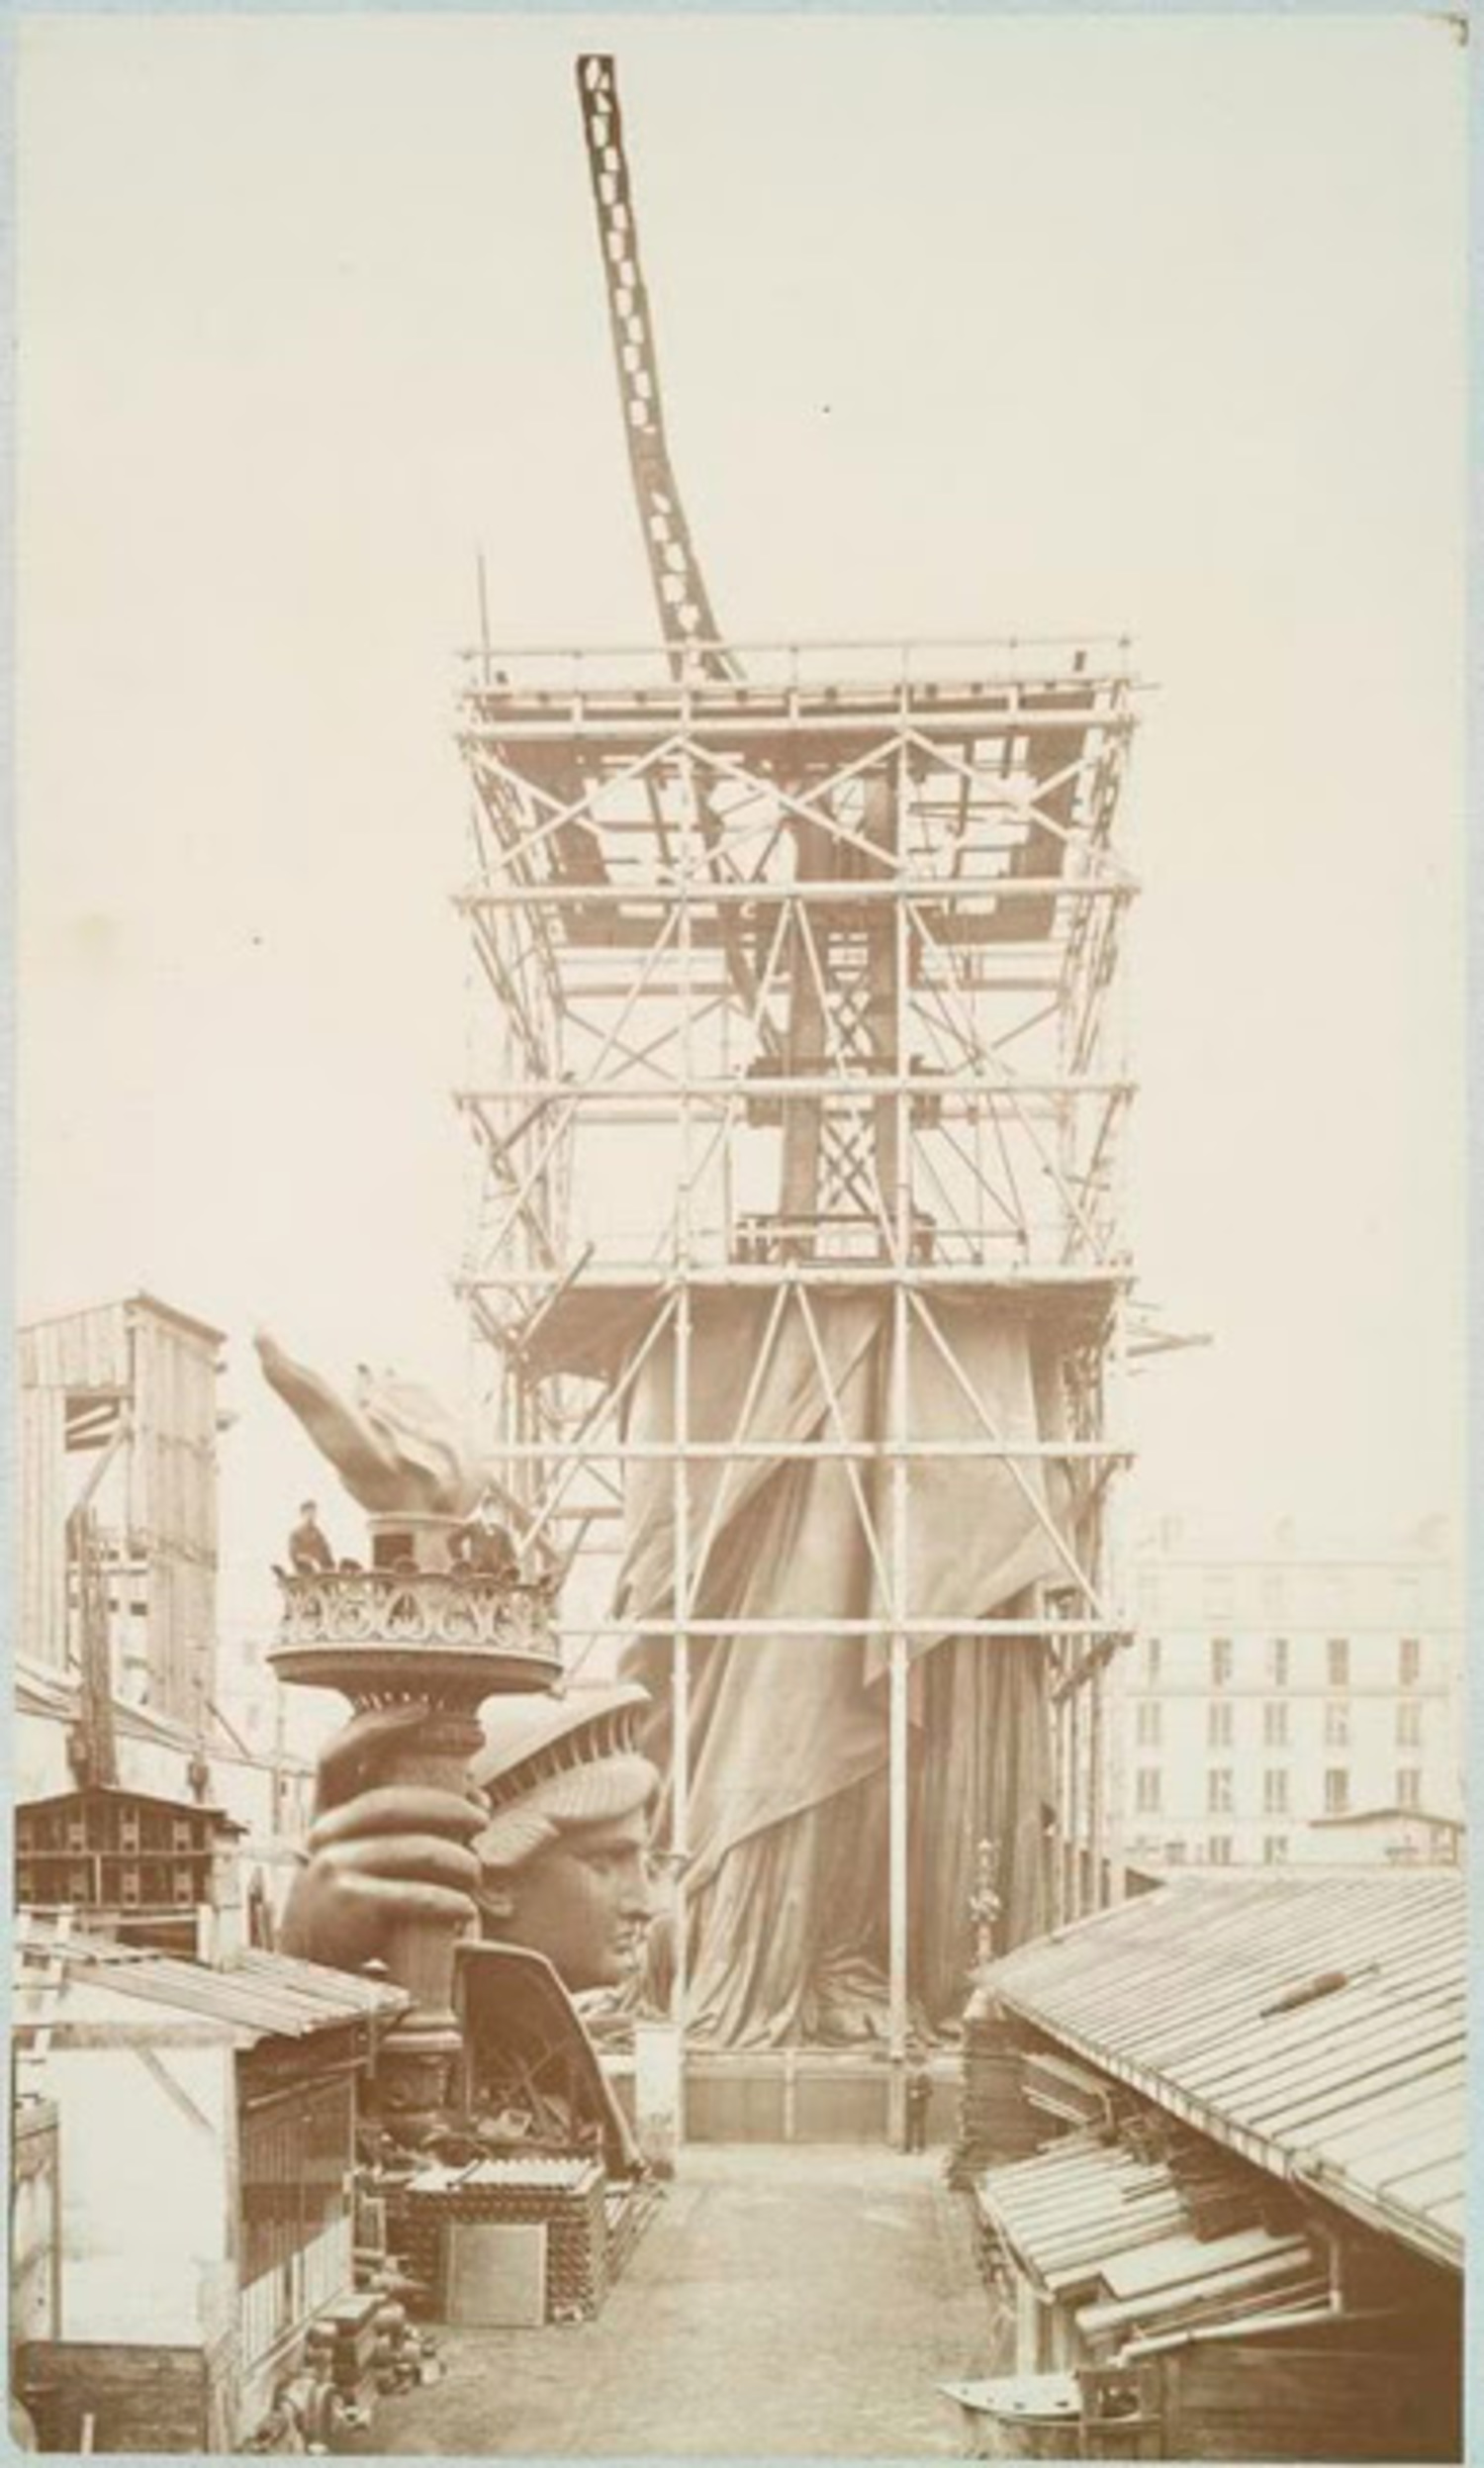 Assemblage of the Statue of Liberty in Paris, showing the bottom half of the statue erect under scaffolding, the head and torch at its feet, 1883.